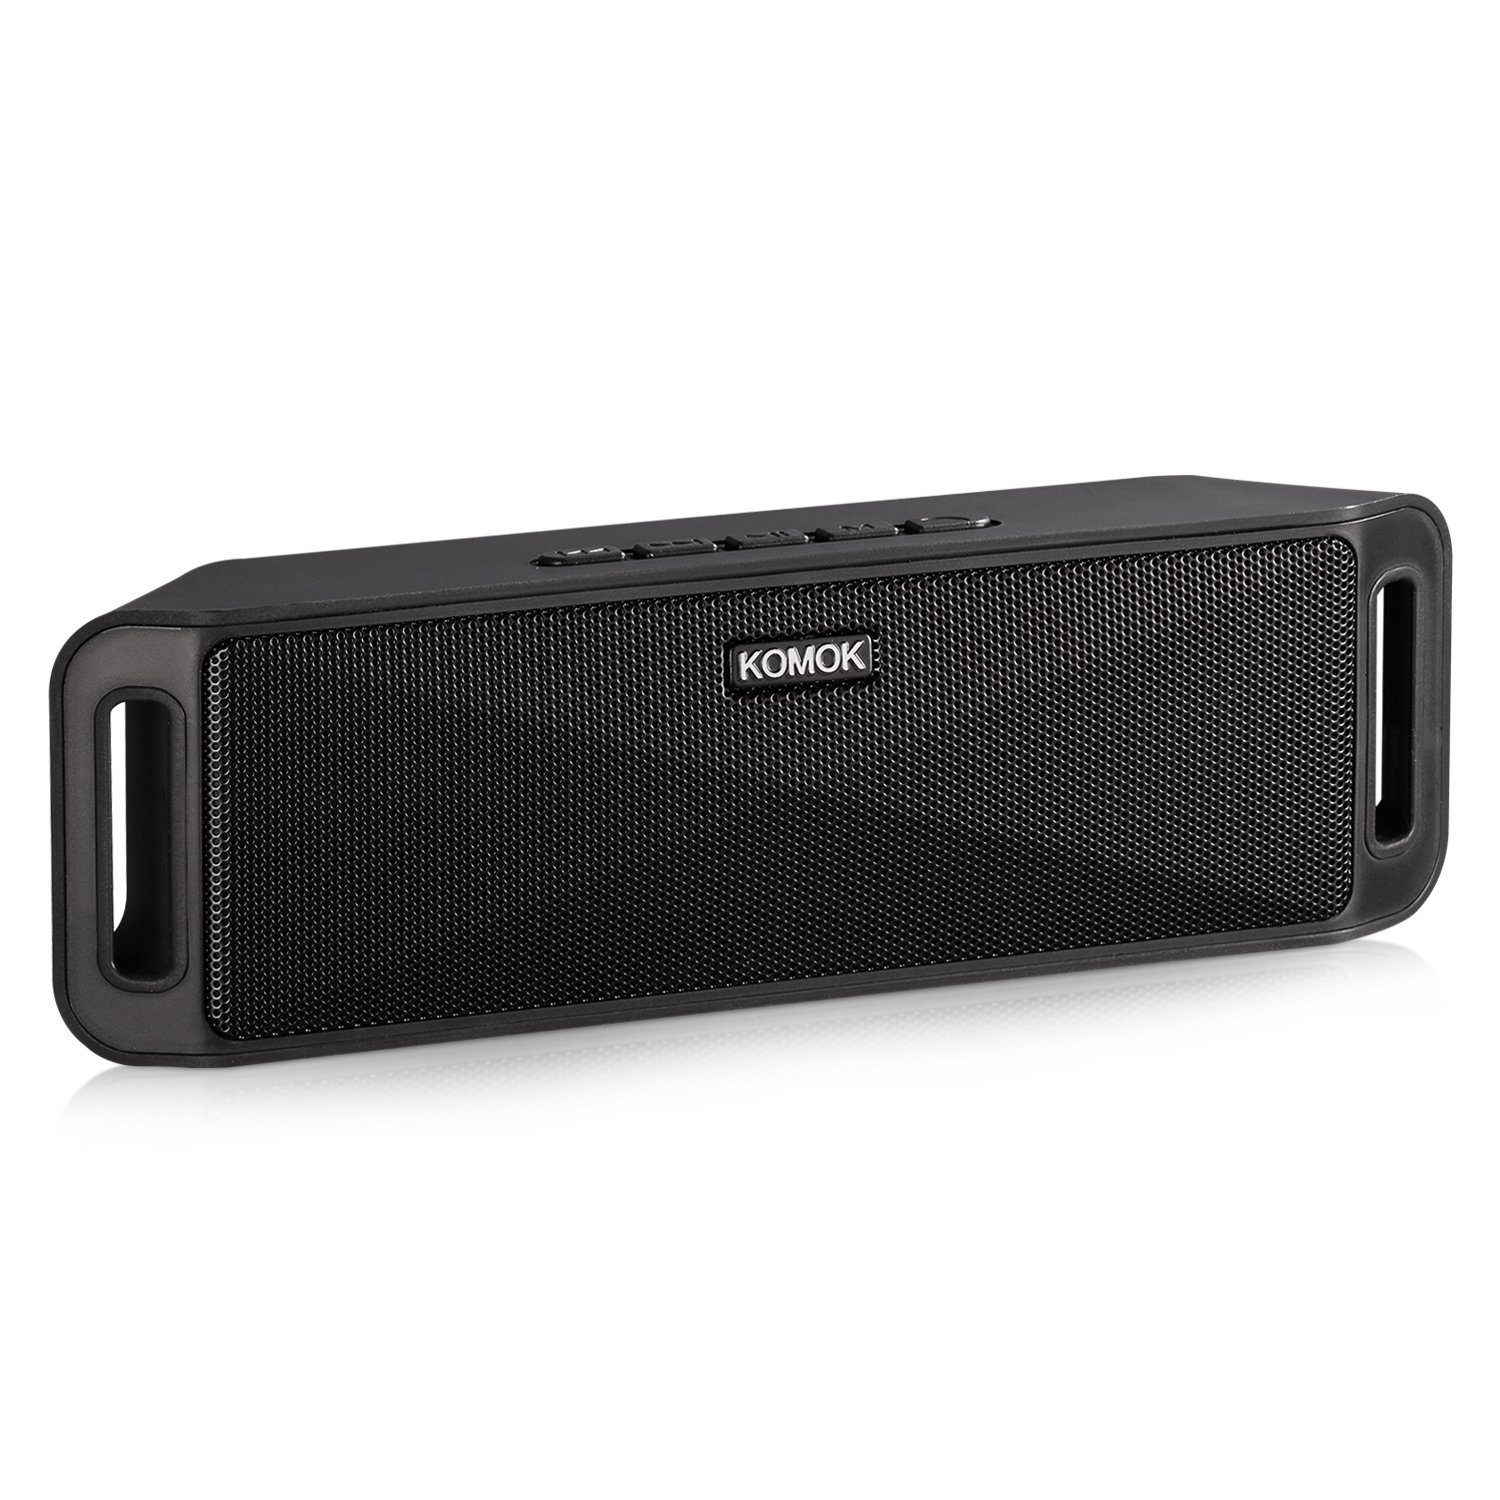 Portable Mini Bluetooth Speaker, Built-In Mic | Powerful Dual Loudspeakers, Wireless Hands-Free Calls | Stereo, FM, AUX, TF Card, USB Rechargeable (black)